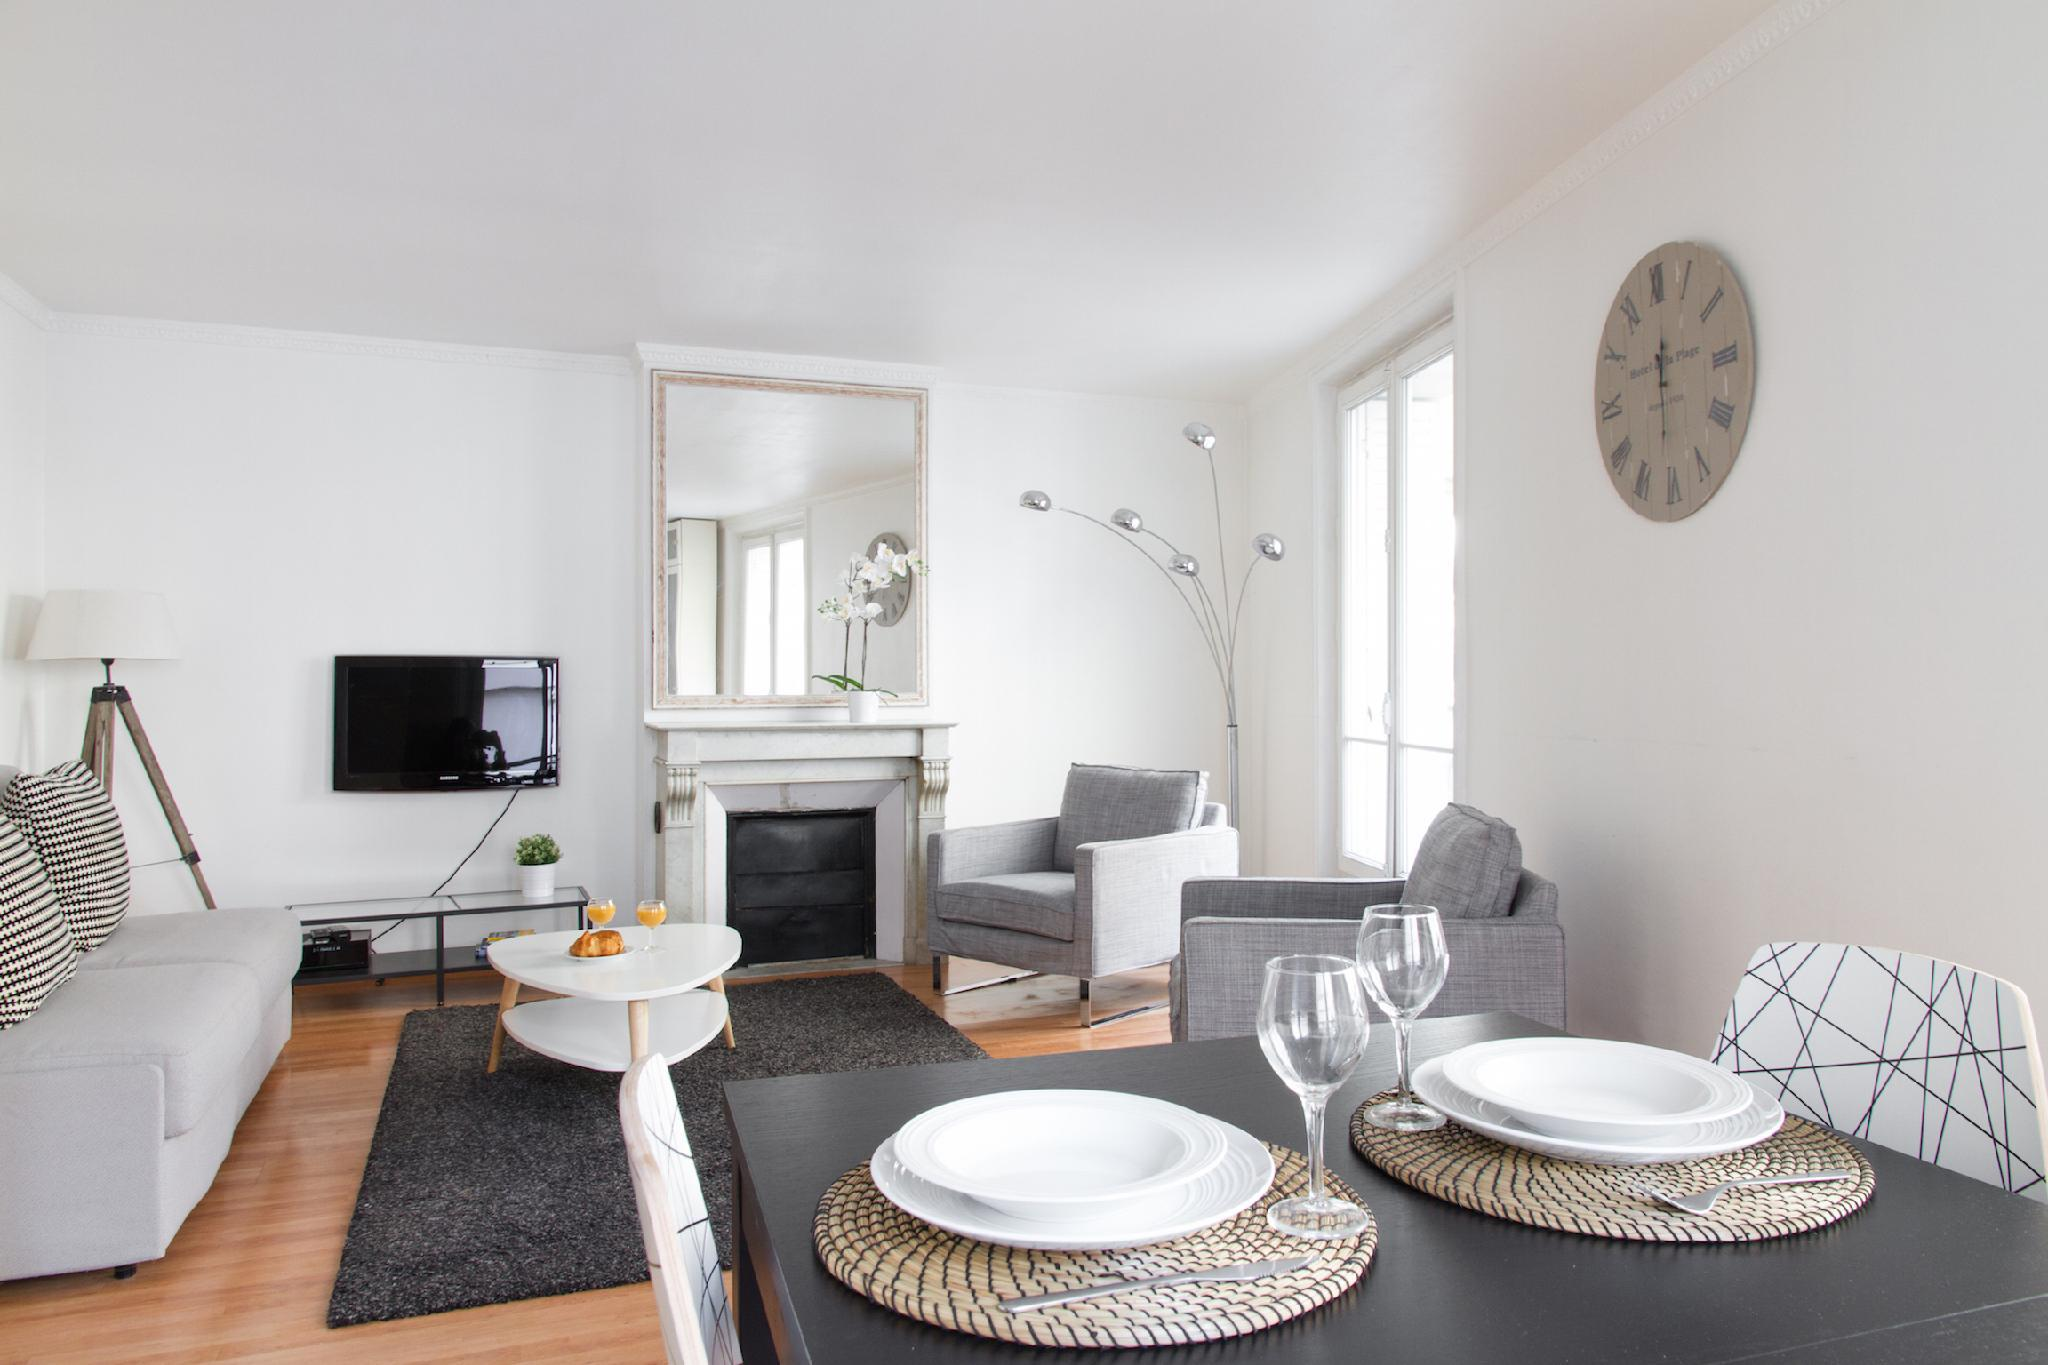 RUE ST HONORE LOVELY 1BR STEPS FROM THE LOUVRE